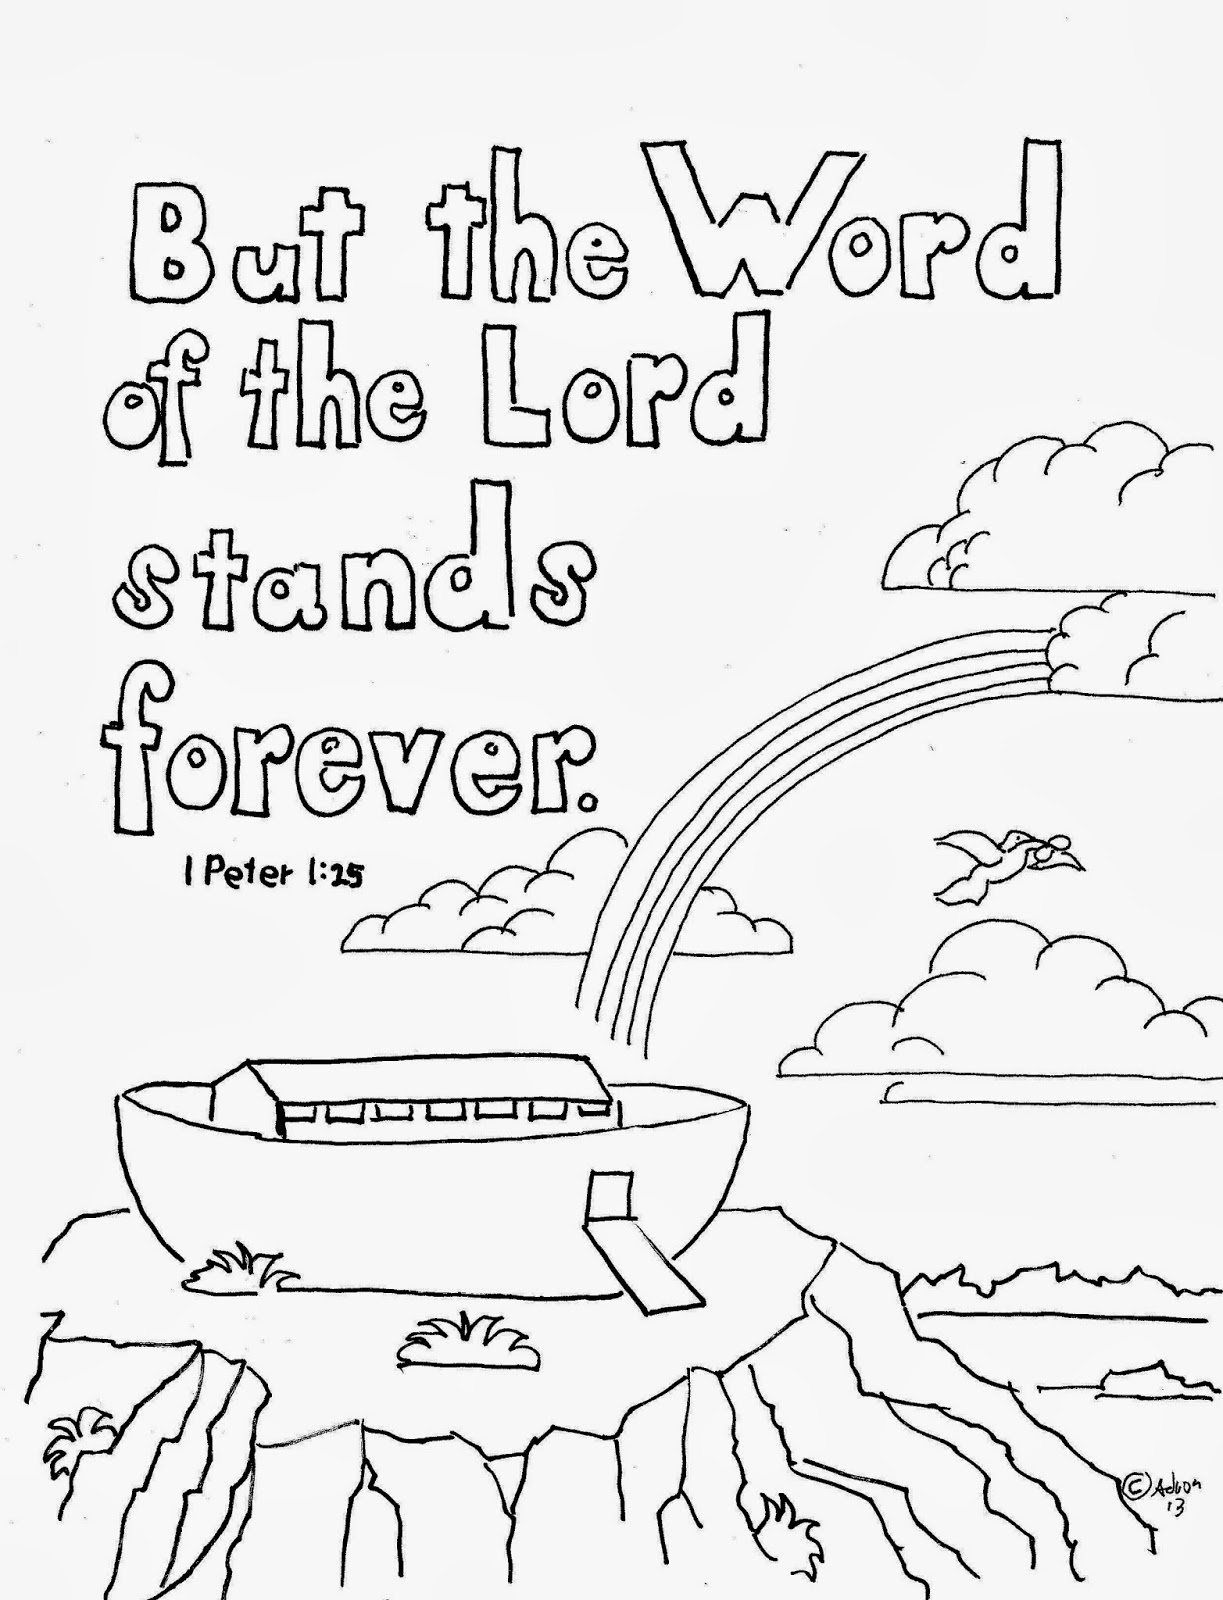 kjv bible verse coloring pages - photo#15